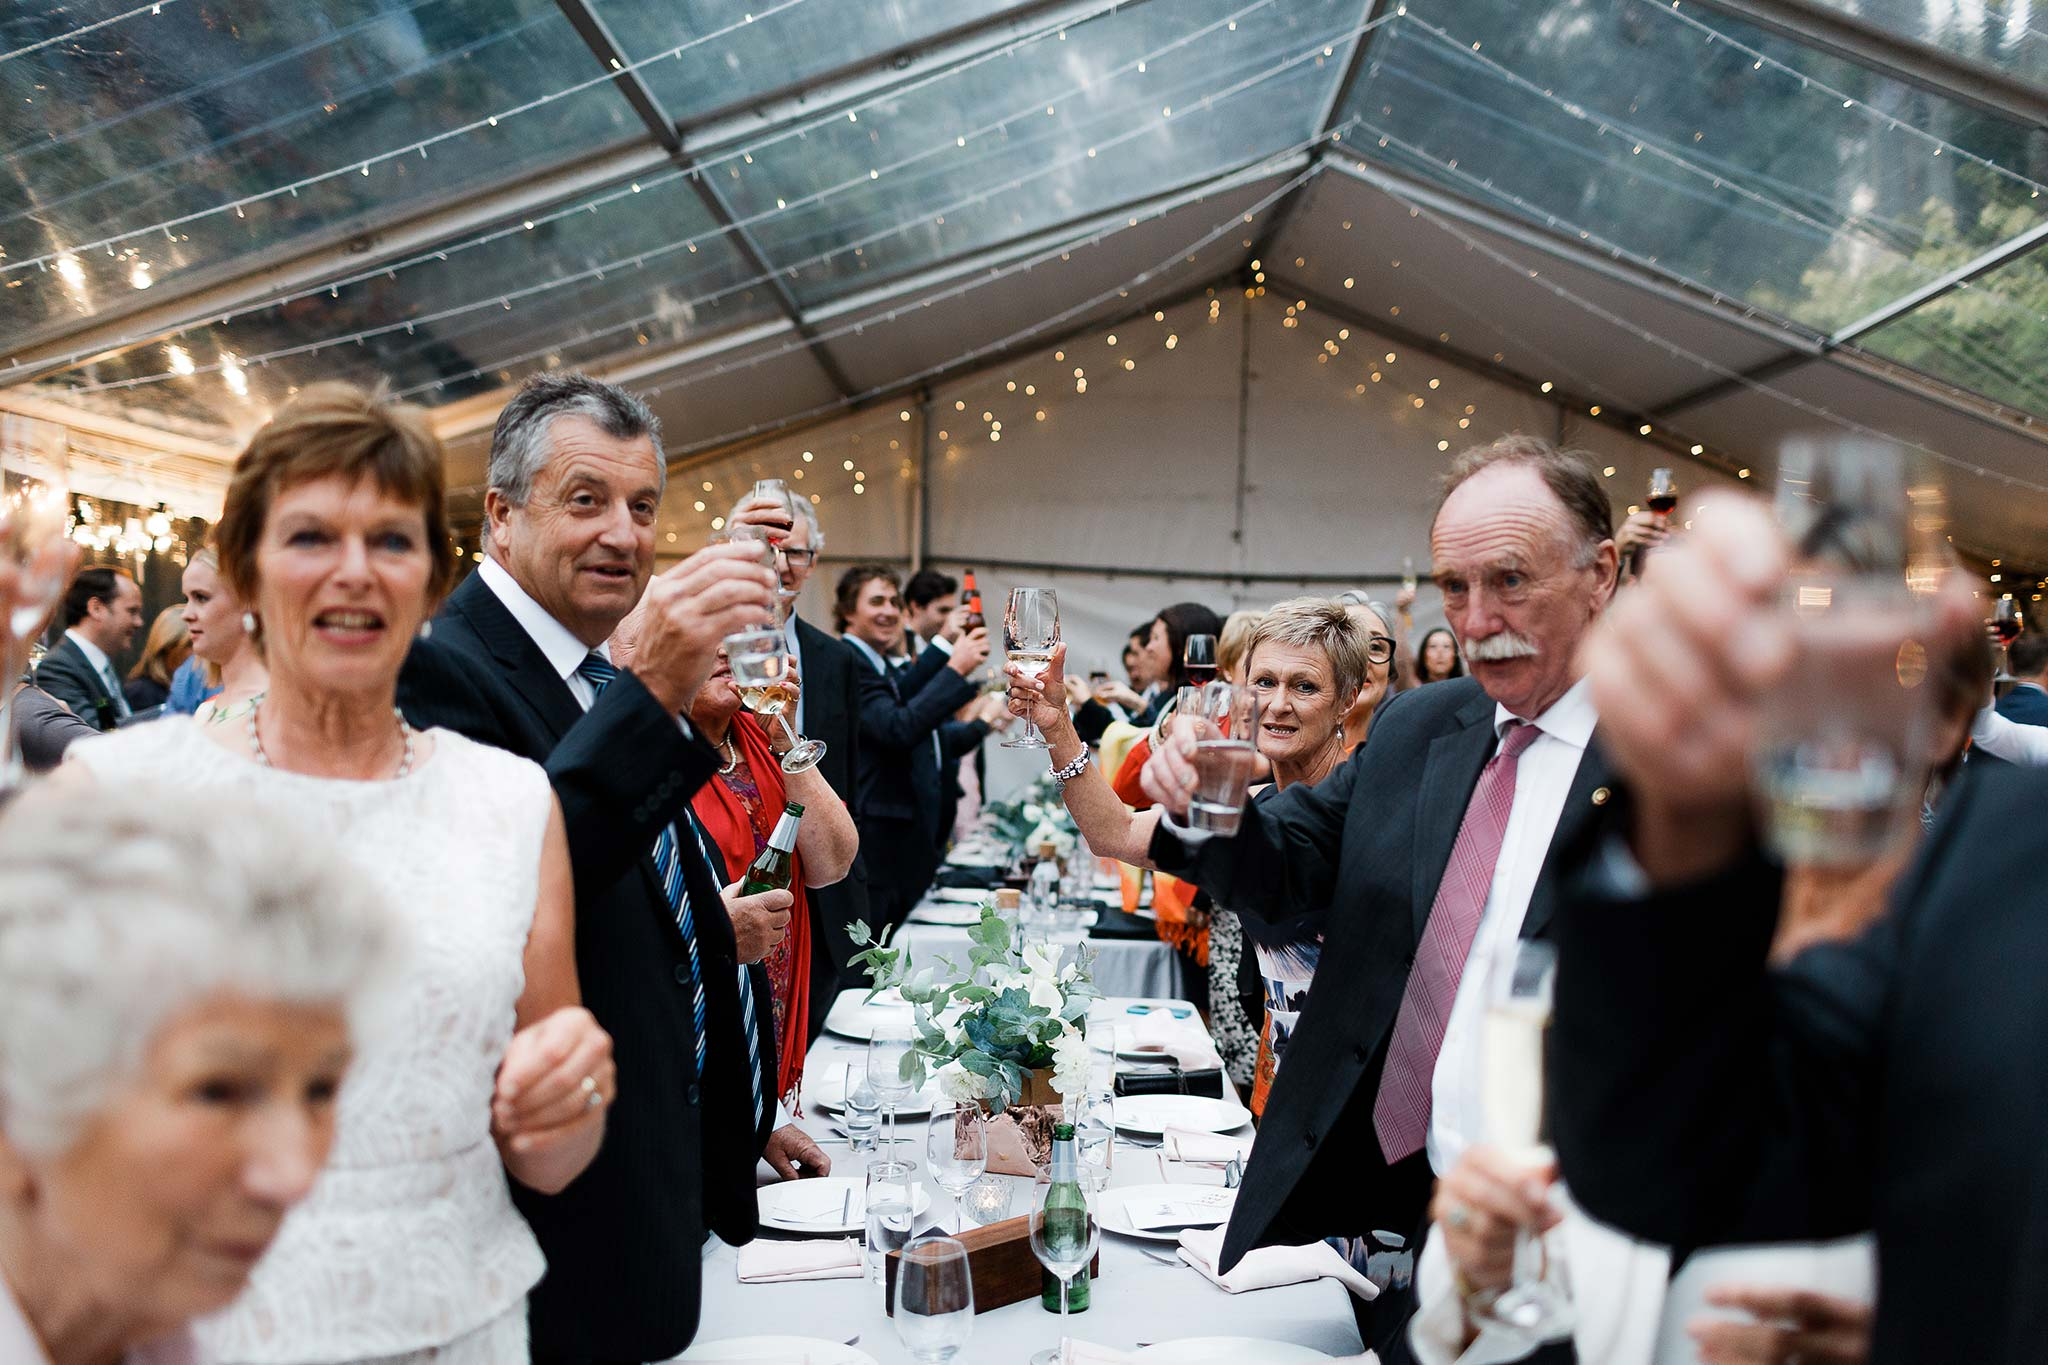 Tasmania-Davenport-Farm-Wedding-toast